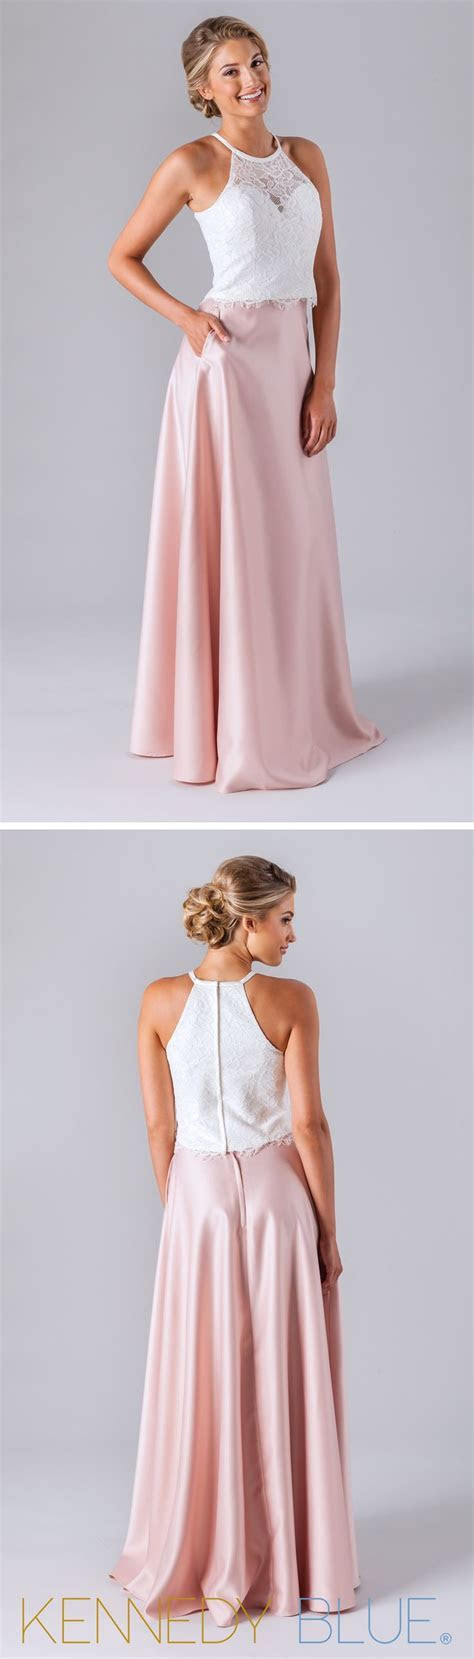 1000  ideas about Satin Skirt on Pinterest   Satin Blouses